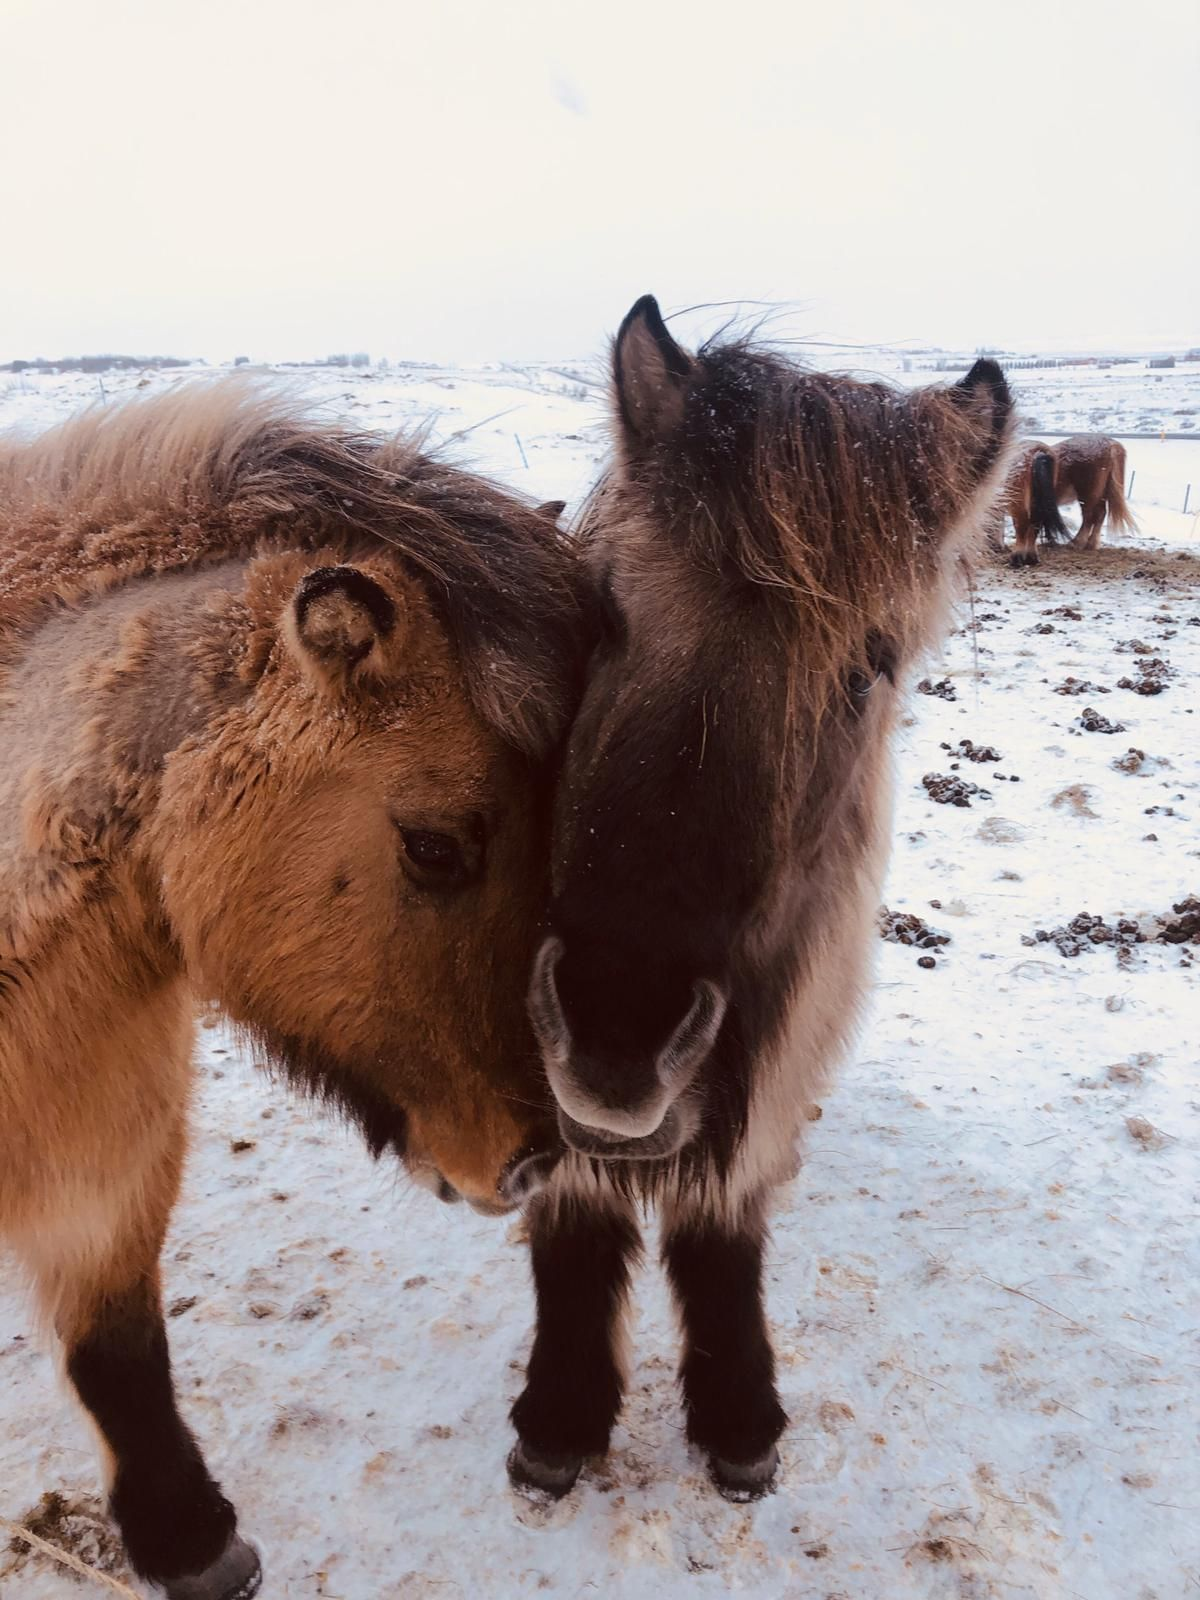 The beautiful icelandic horses